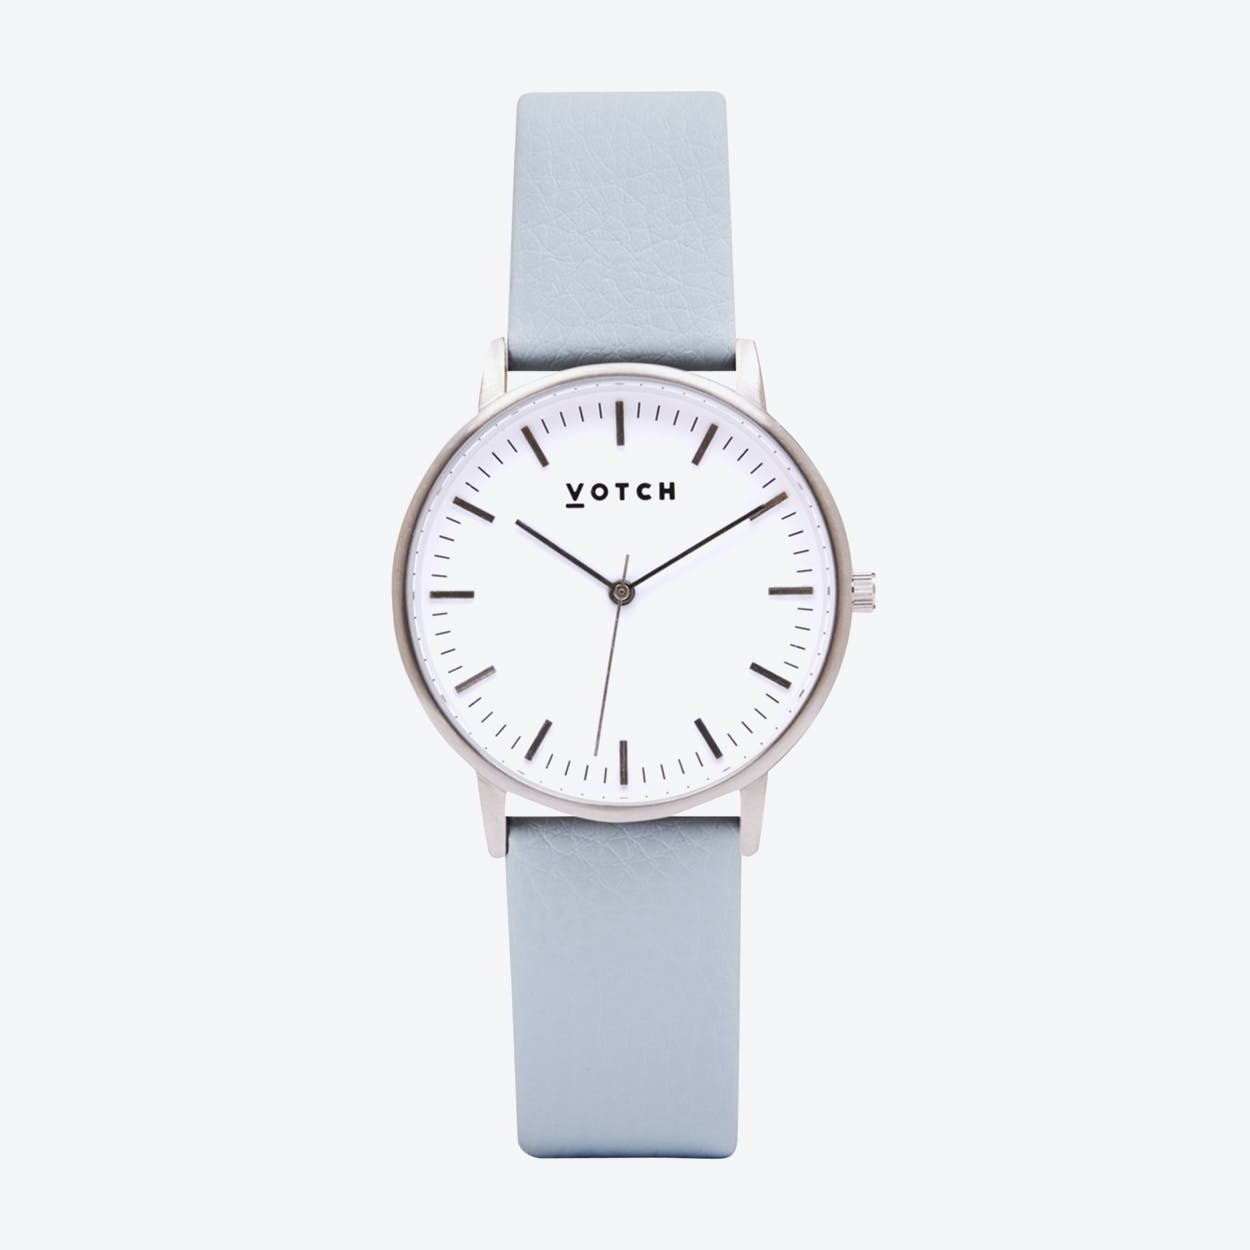 Intense Classic Watch in Silver with White Face and Light Blue Vegan Leather Strap, 36mm